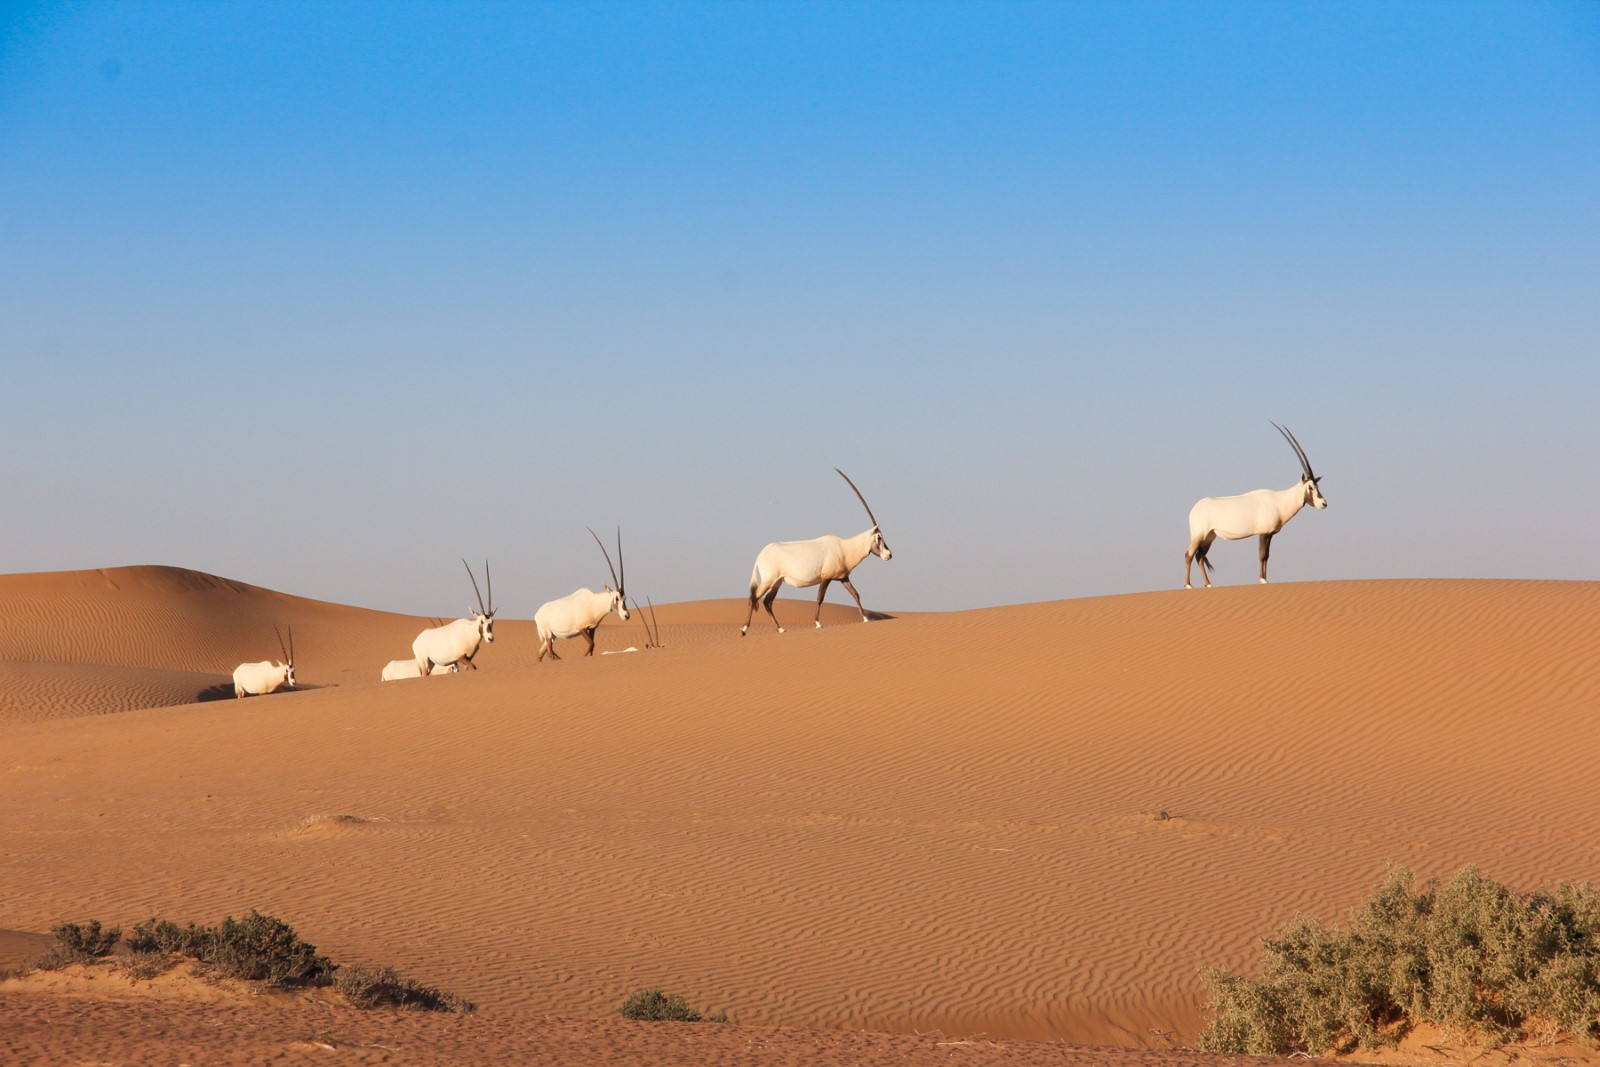 Desert Safaris that Make a Positive Difference in Dubai